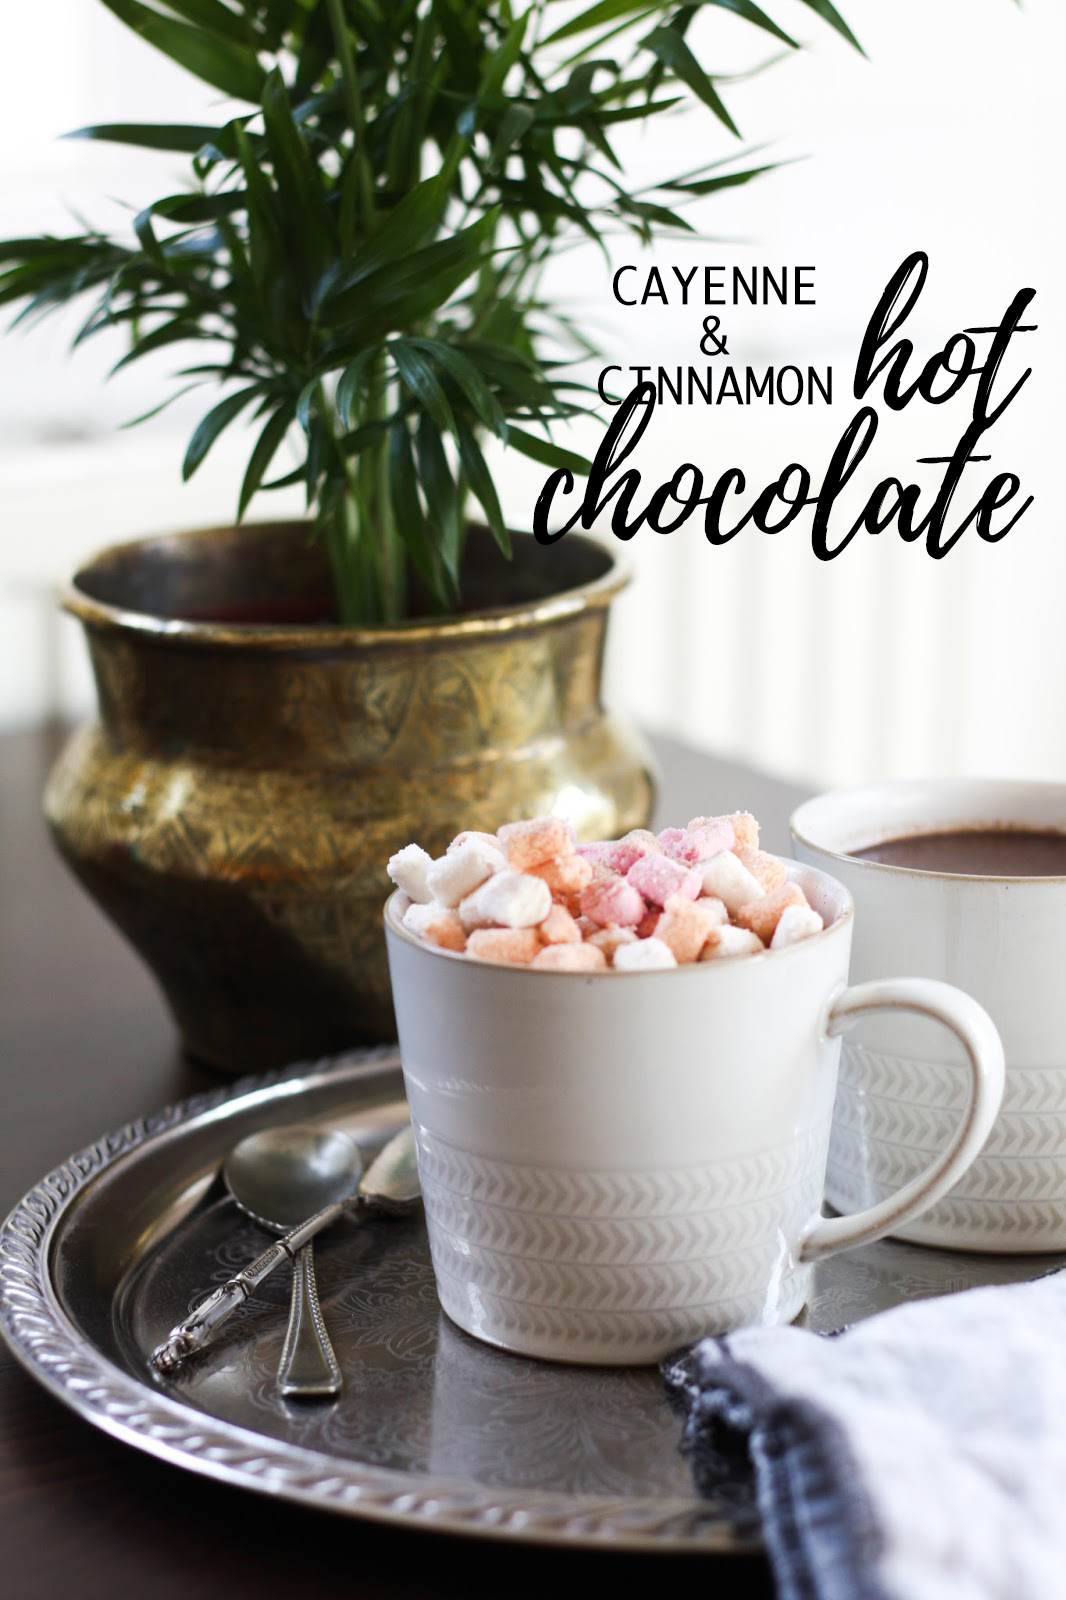 Cayenne & cinnamon hot chocolate